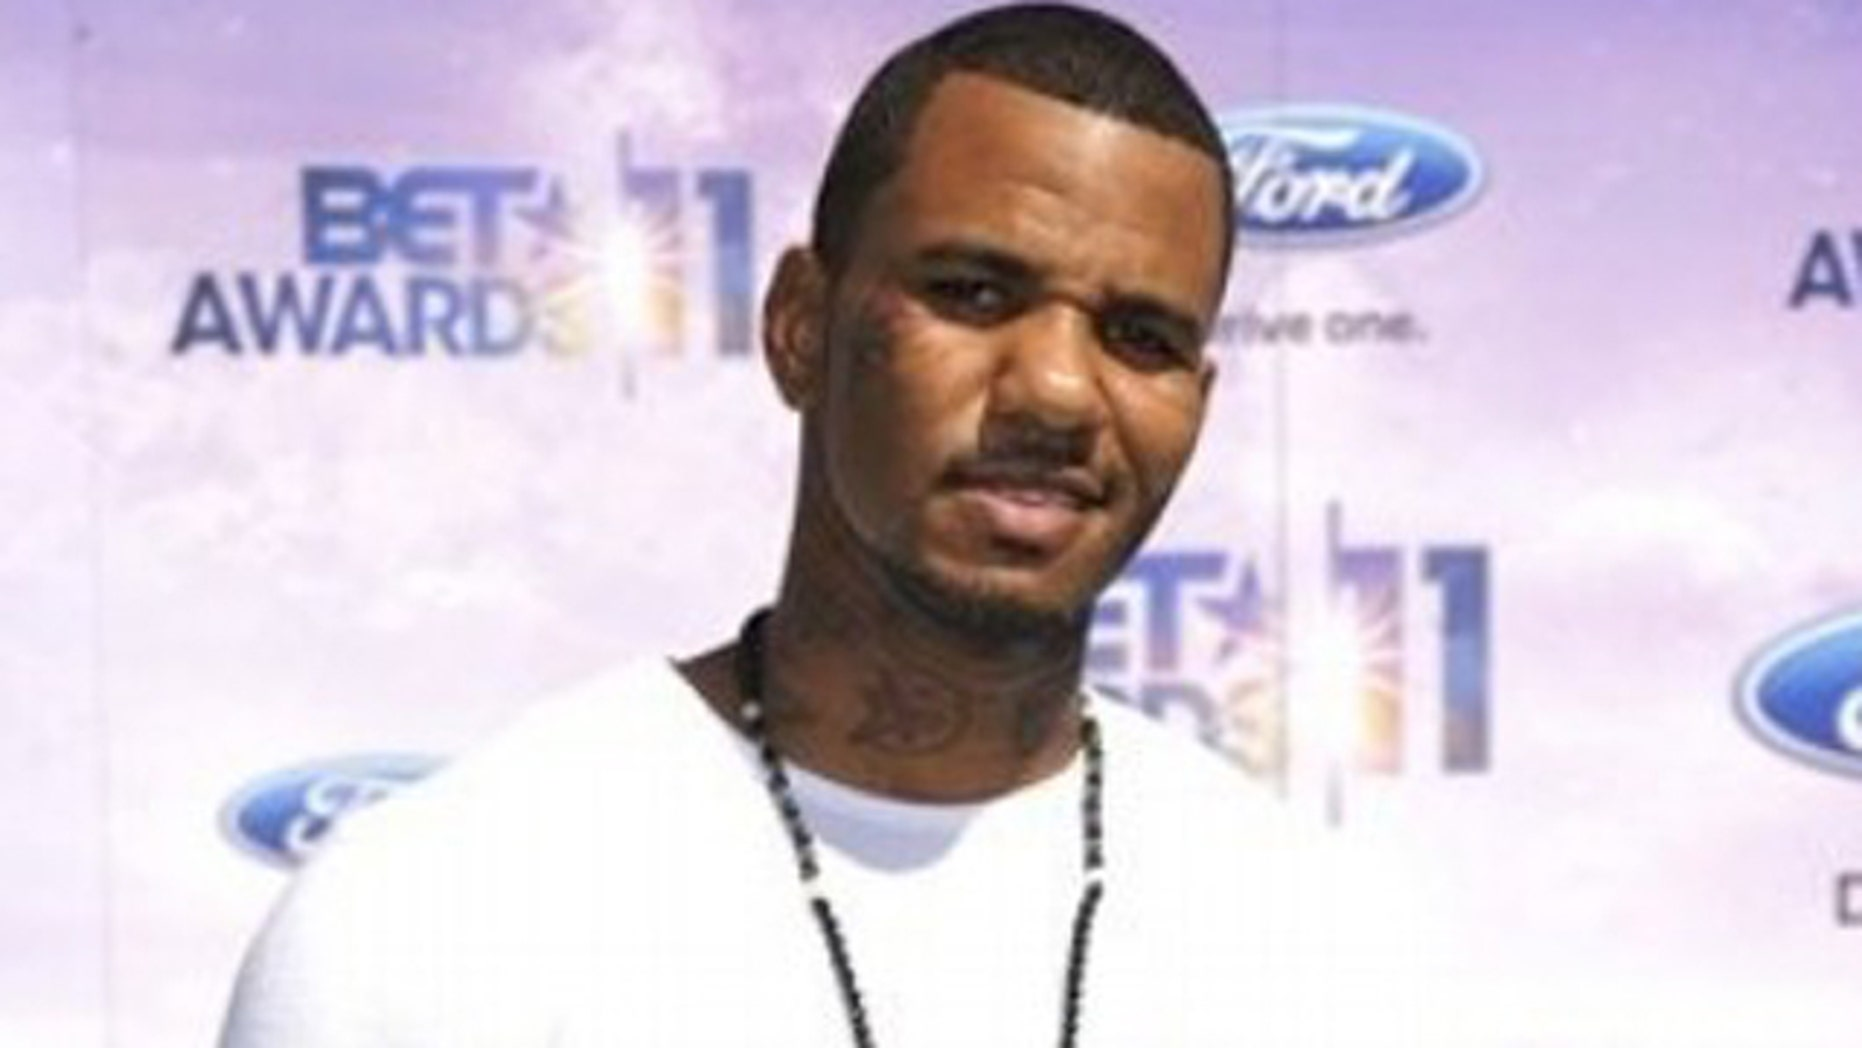 FILE: Jayceon Terrell Taylor, also known as The Game, arrives at the BET Awards.